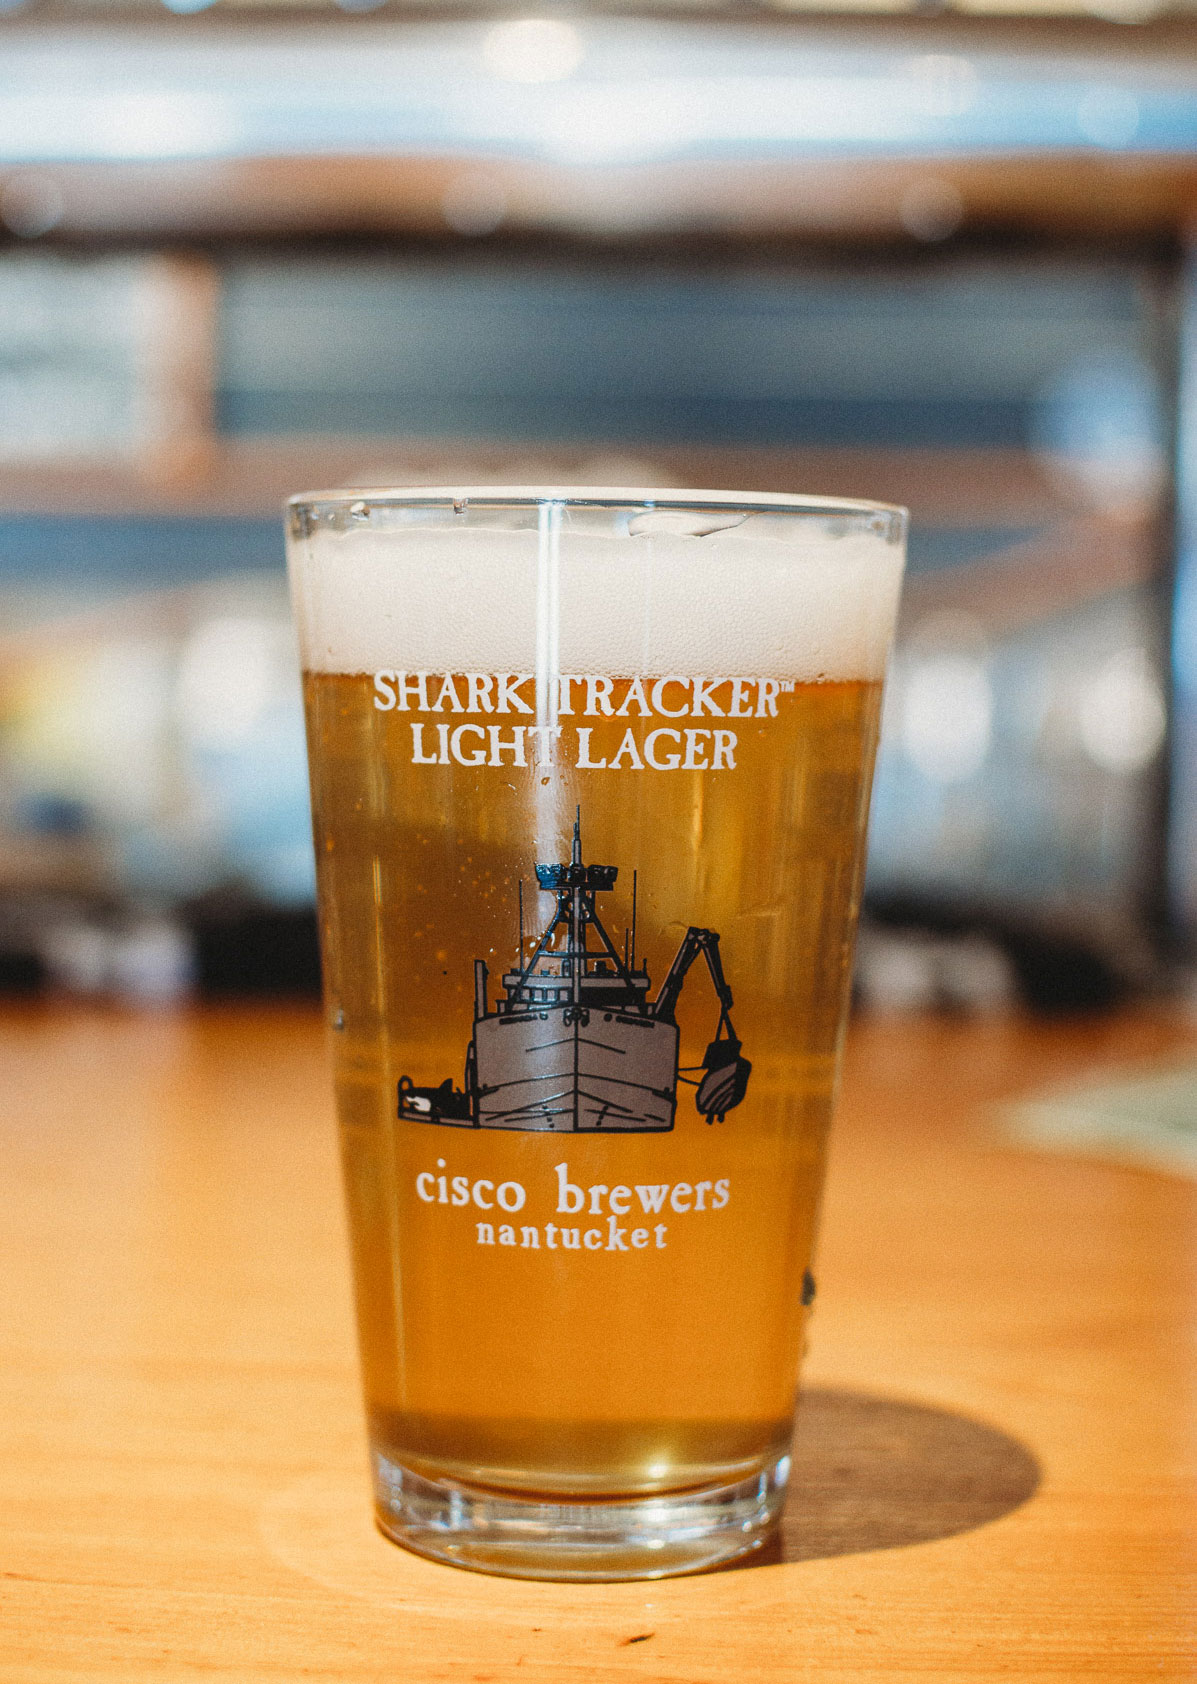 Cisco Brewers Shark Tracker Lager | Nicole Victory Design